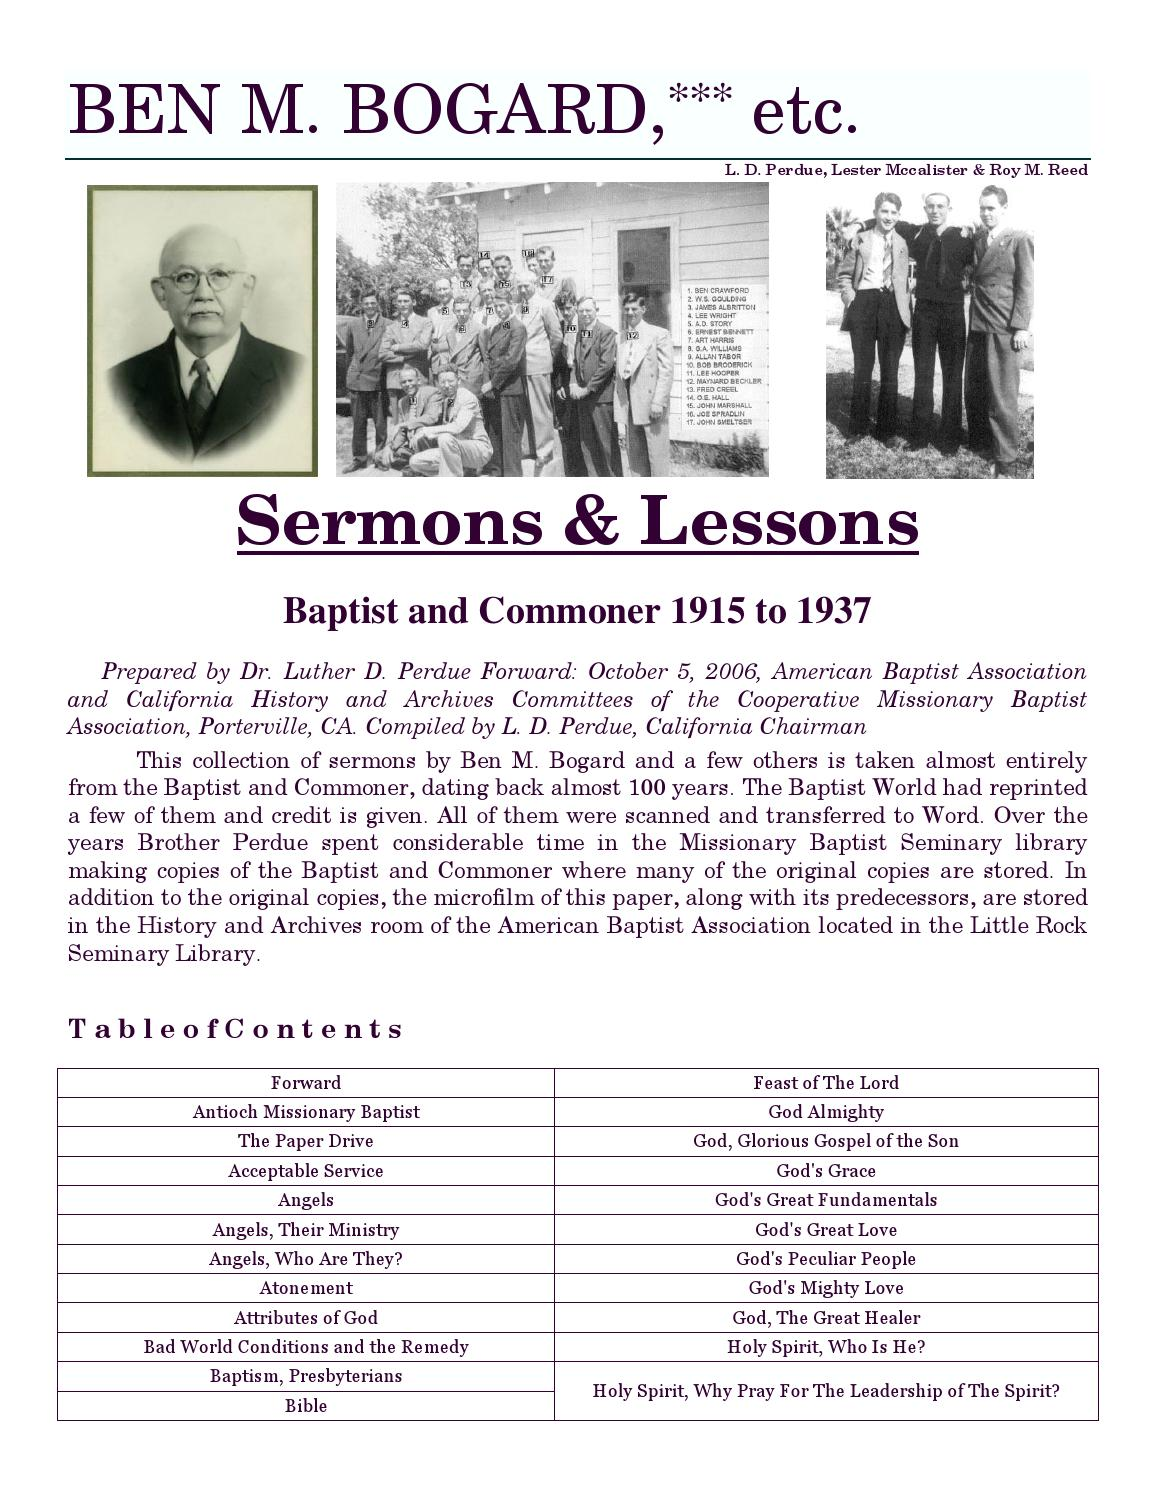 Sermons and lessons by Dr  Ben M  Bogard, etc  by Shayne